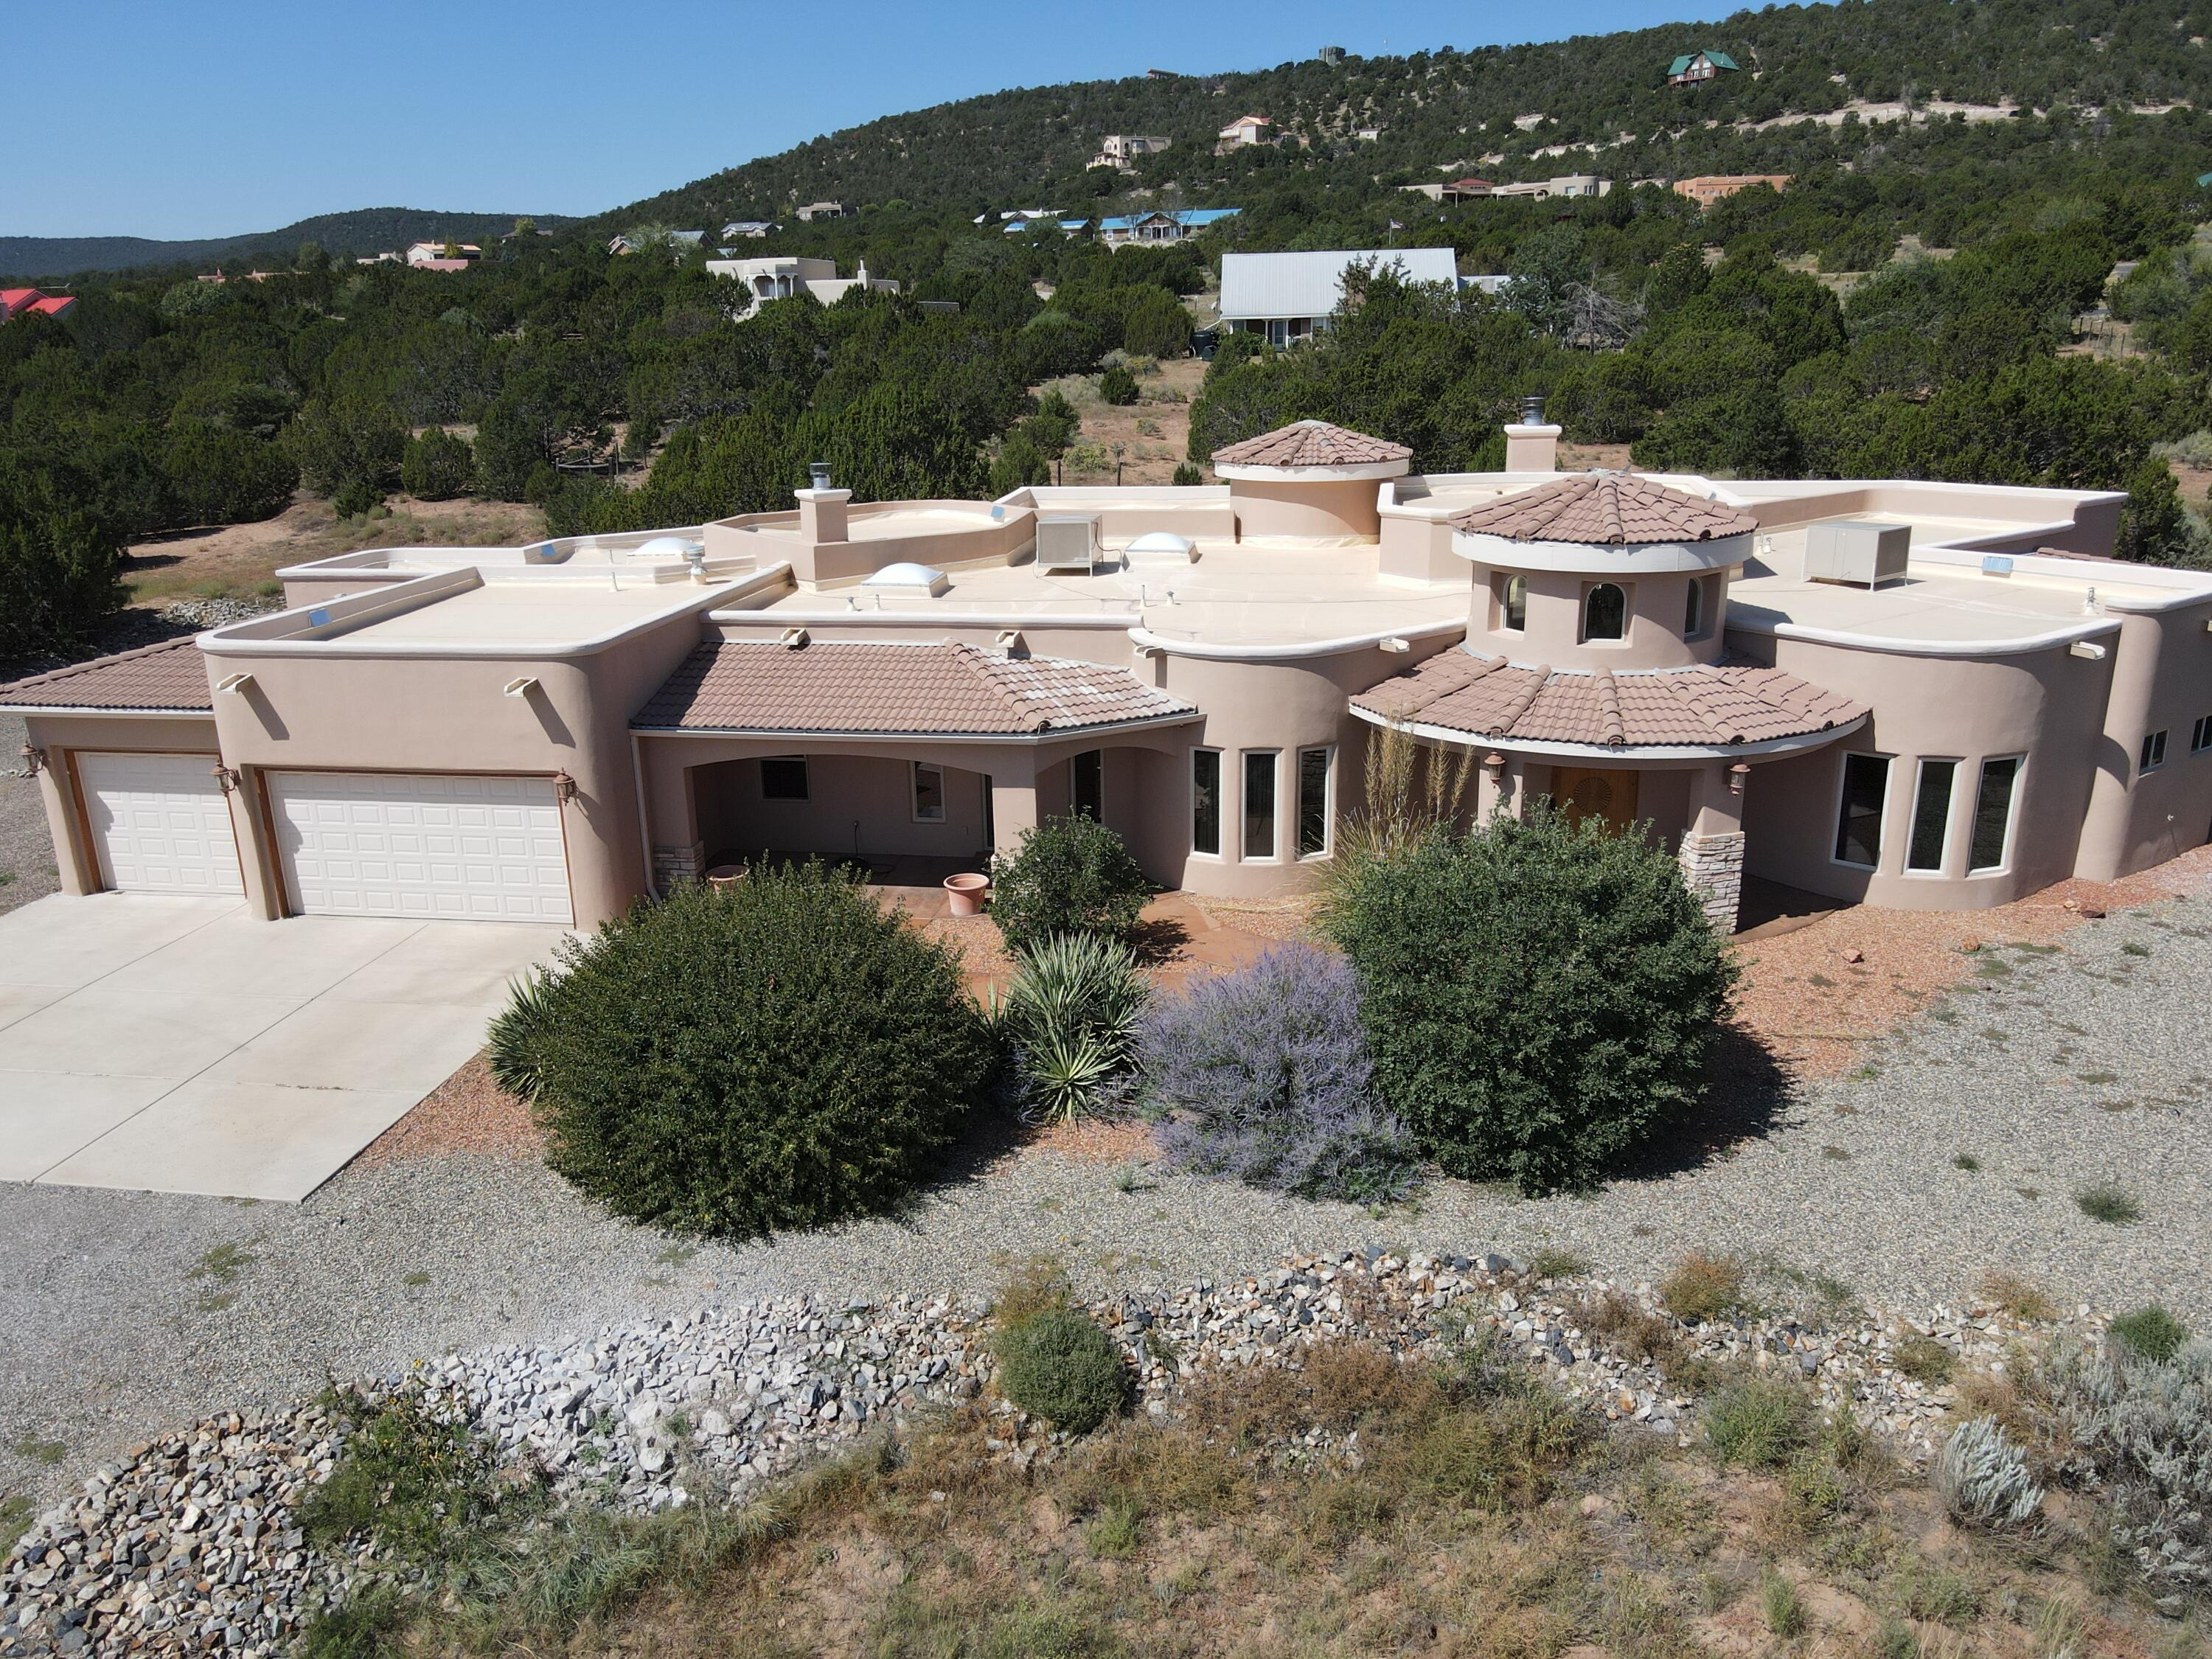 Welcome to an Estate of Sandia Mountain Ranch!  This highly sought after subdivision is the GEM of the East Mountains!  This one owner, custom built home is nestled on over TWO ACRES of Mountain Real Estate!  The spacious floor plan features FIVE large bedrooms, four of the bedrooms and en-suite bathrooms, an incredible master suite with a cozy fireplace, garden tub, separate shower, HUGE walk in closet, patio access, a finished and oversized three car garage, storage room, radian heat, NEW  T.P.O. ROOF SYSTEM, NEW MASTER COOL UNITS, T&G ceiling in the Great Room, ALL Upgraded appliances, and over 1600 square feet of covered patio !!!!Come see this amazing property TODAY!